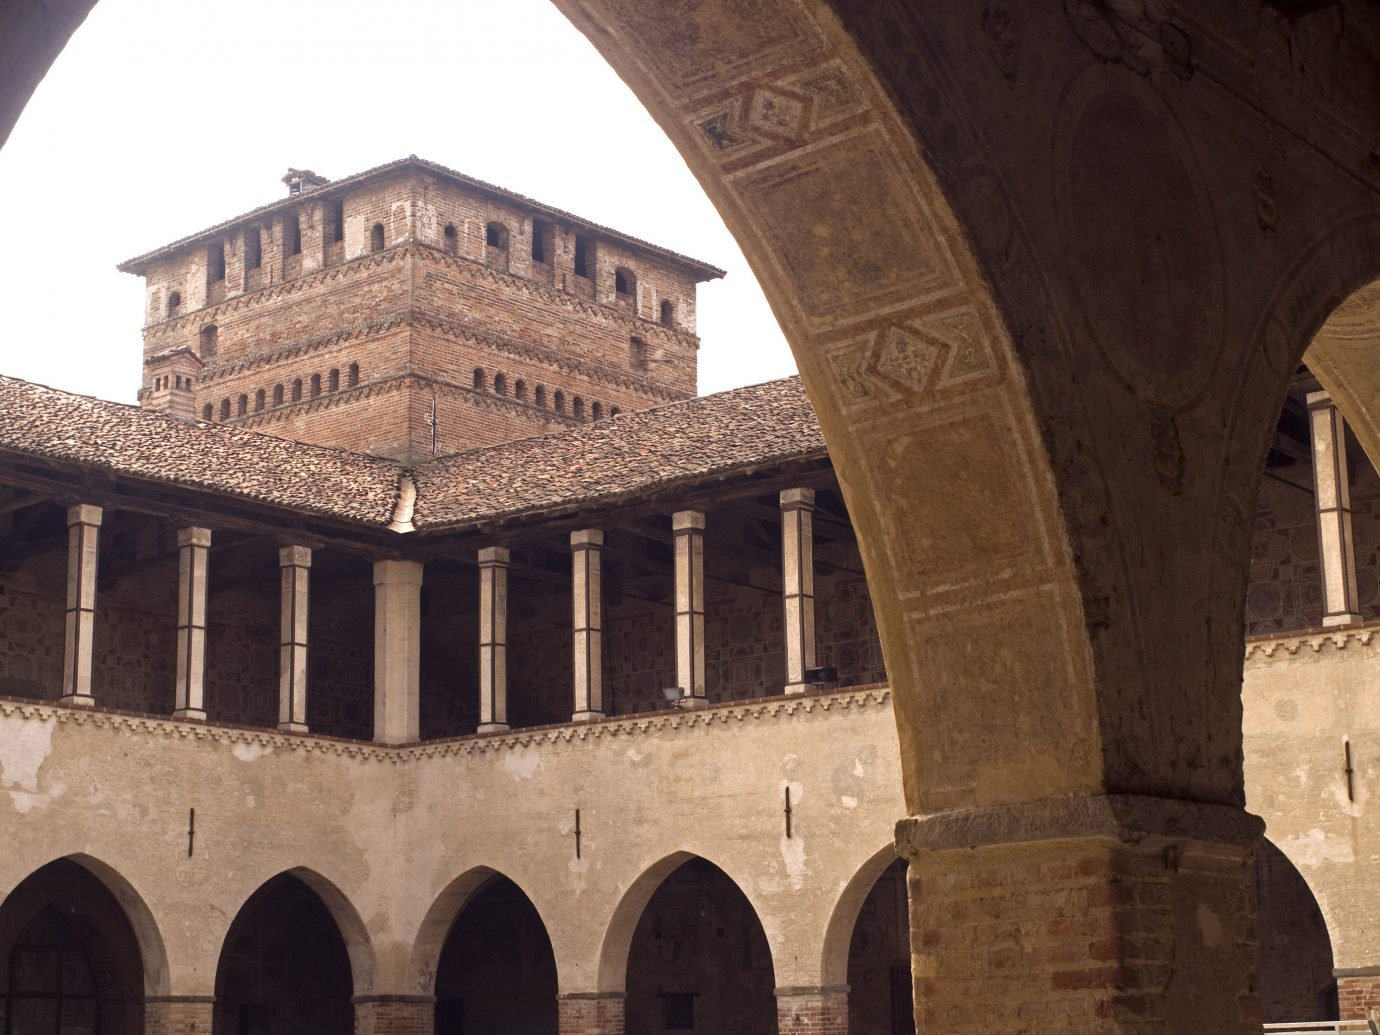 Arts + Culture Italy Milan Trip Ideas arch historic site landmark column building medieval architecture history ancient history arcade ancient roman architecture basilica facade caravanserai ancient rome fortification sky abbey palace byzantine architecture stock photography window